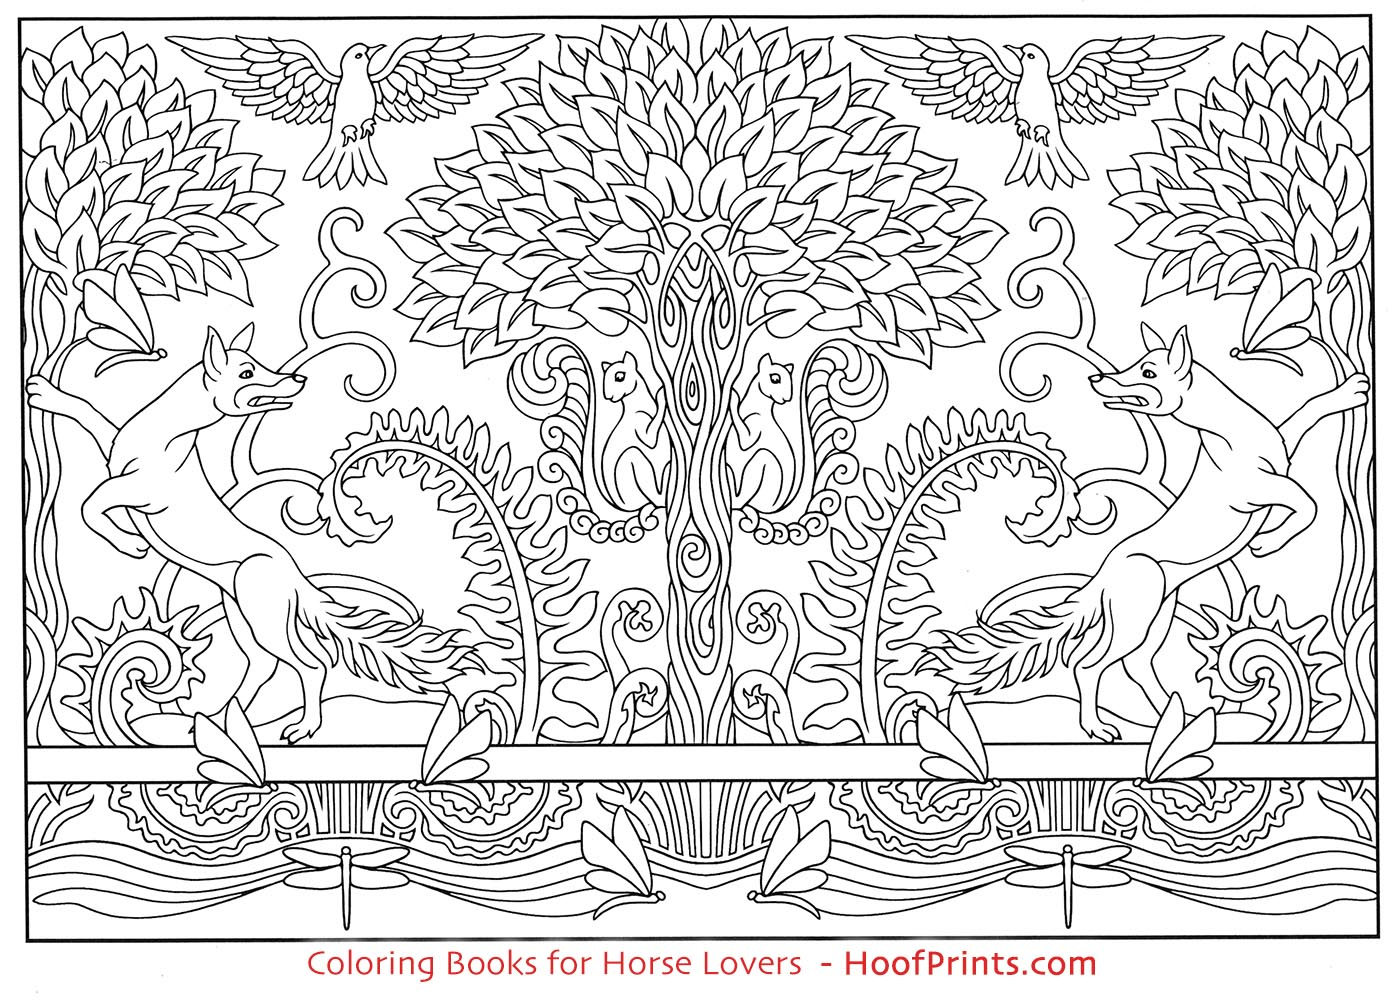 - Art Nouveau Animal Designs Coloring Book - Www.hoofprints.com